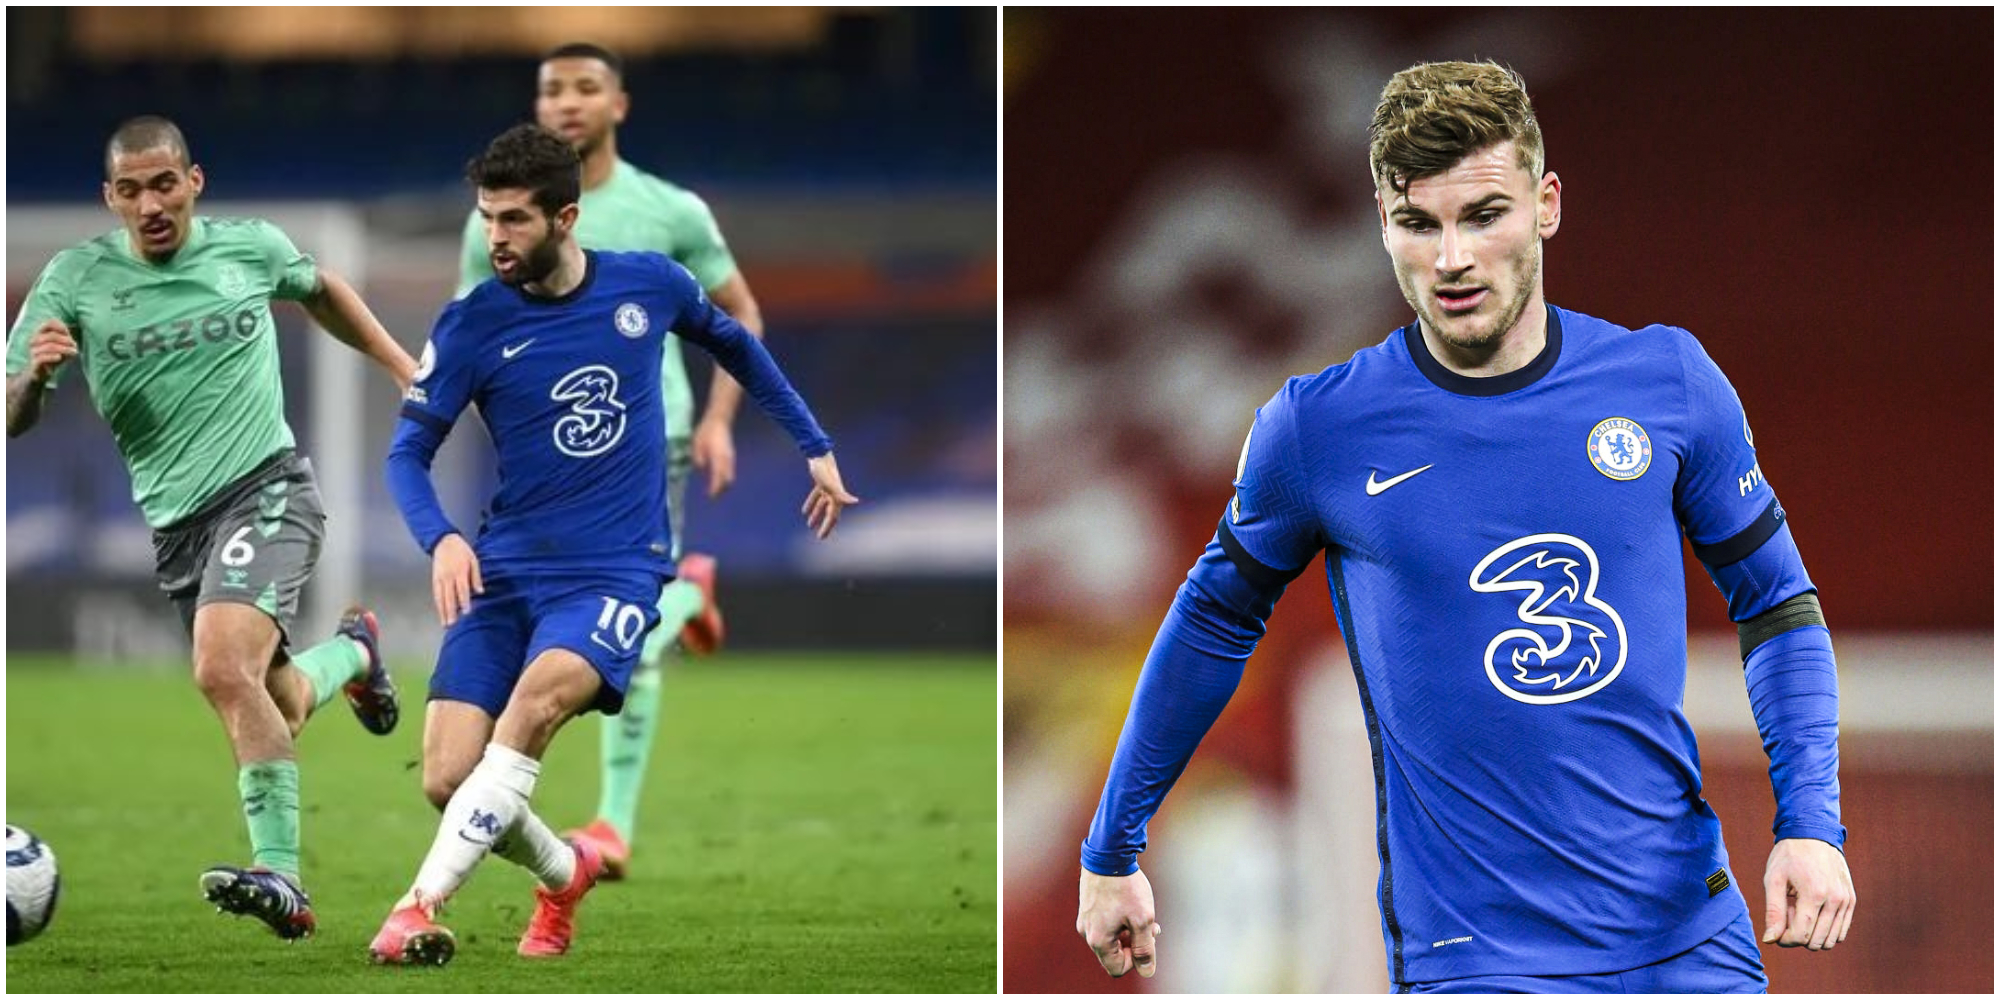 'I'd take him in a heartbeat' – Liverpool fans react as Timo Werner and Christian Pulisic linked with summer exits